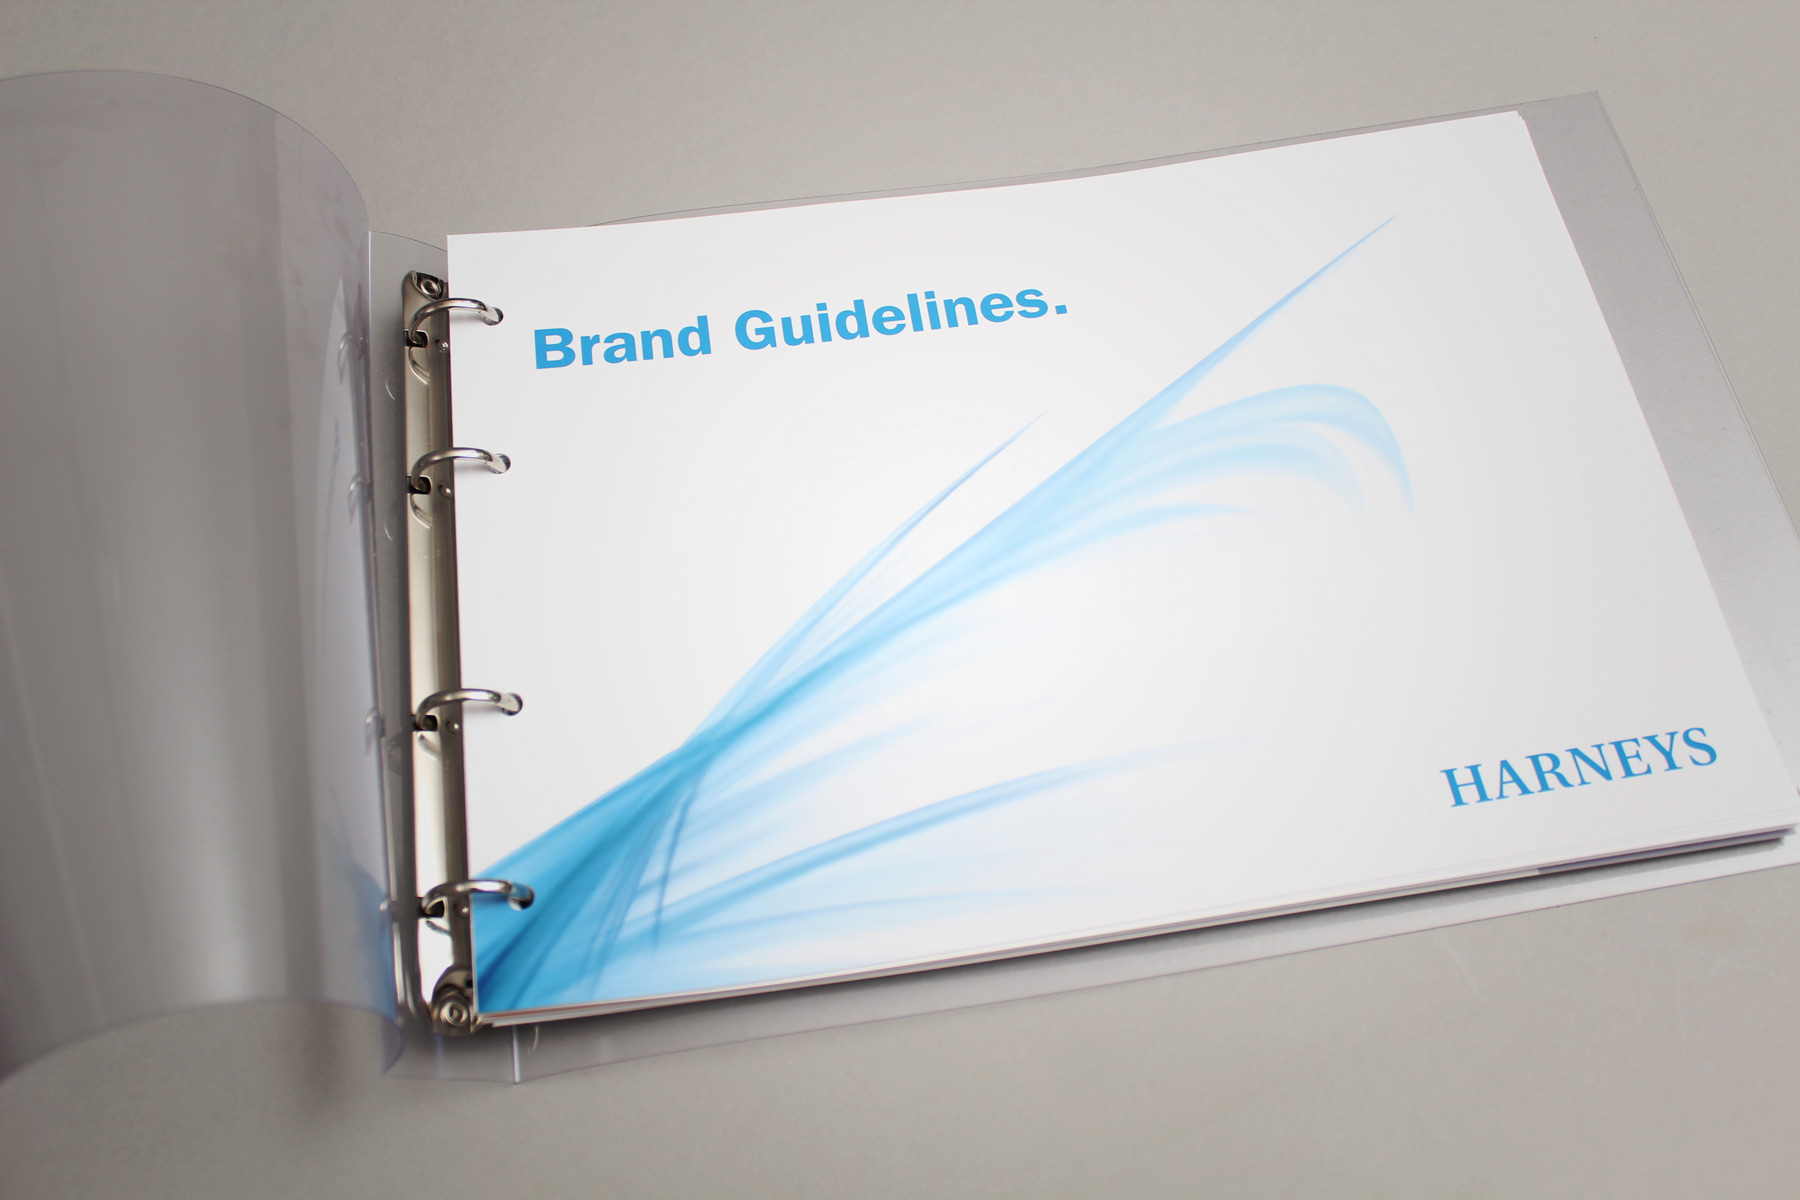 A full set of comprehensive guidelines ensured control and consistency.